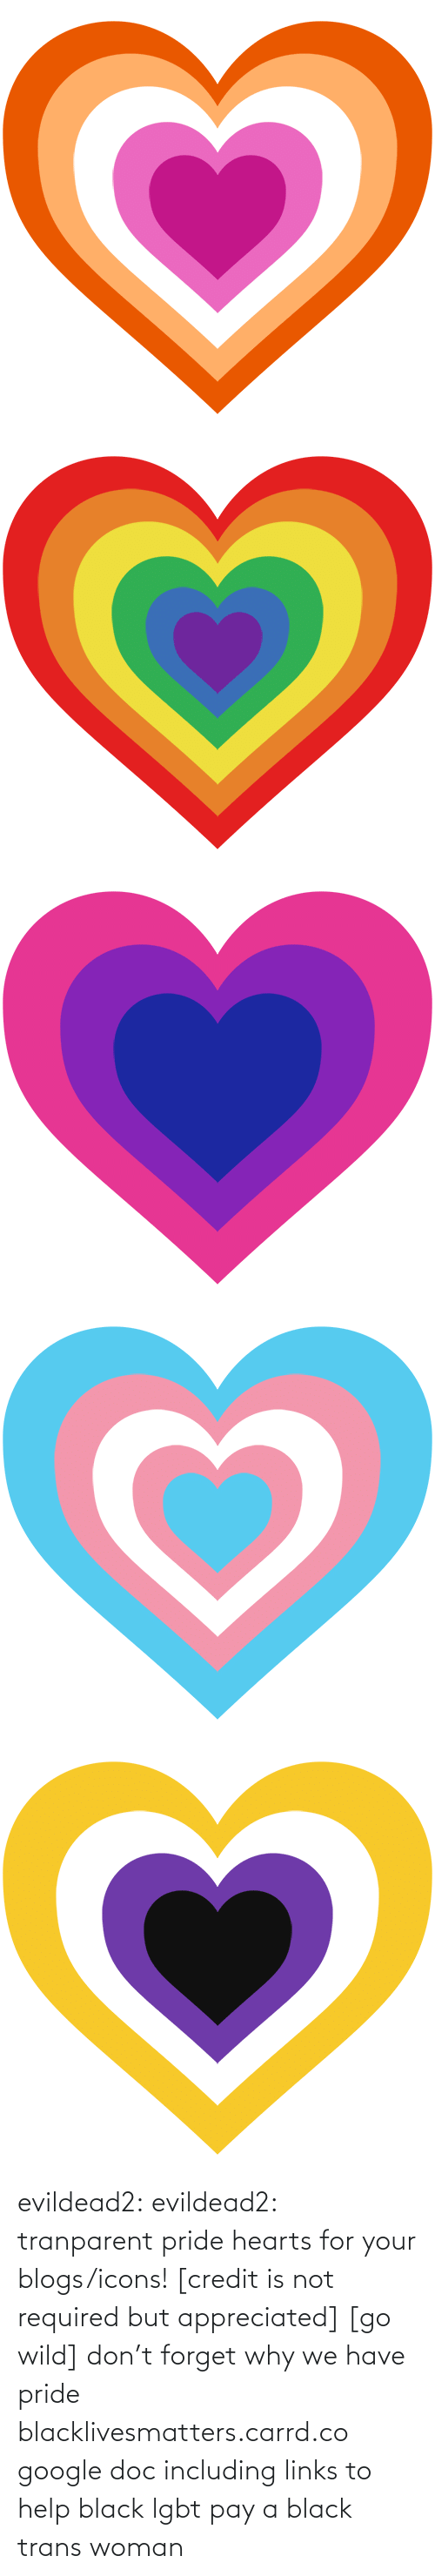 Http: evildead2:  evildead2:  tranparent pride hearts for your blogs/icons! [credit is not required but appreciated] [go wild]      don't forget why we have pride  blacklivesmatters.carrd.co  google doc including links to help black lgbt pay a black trans woman